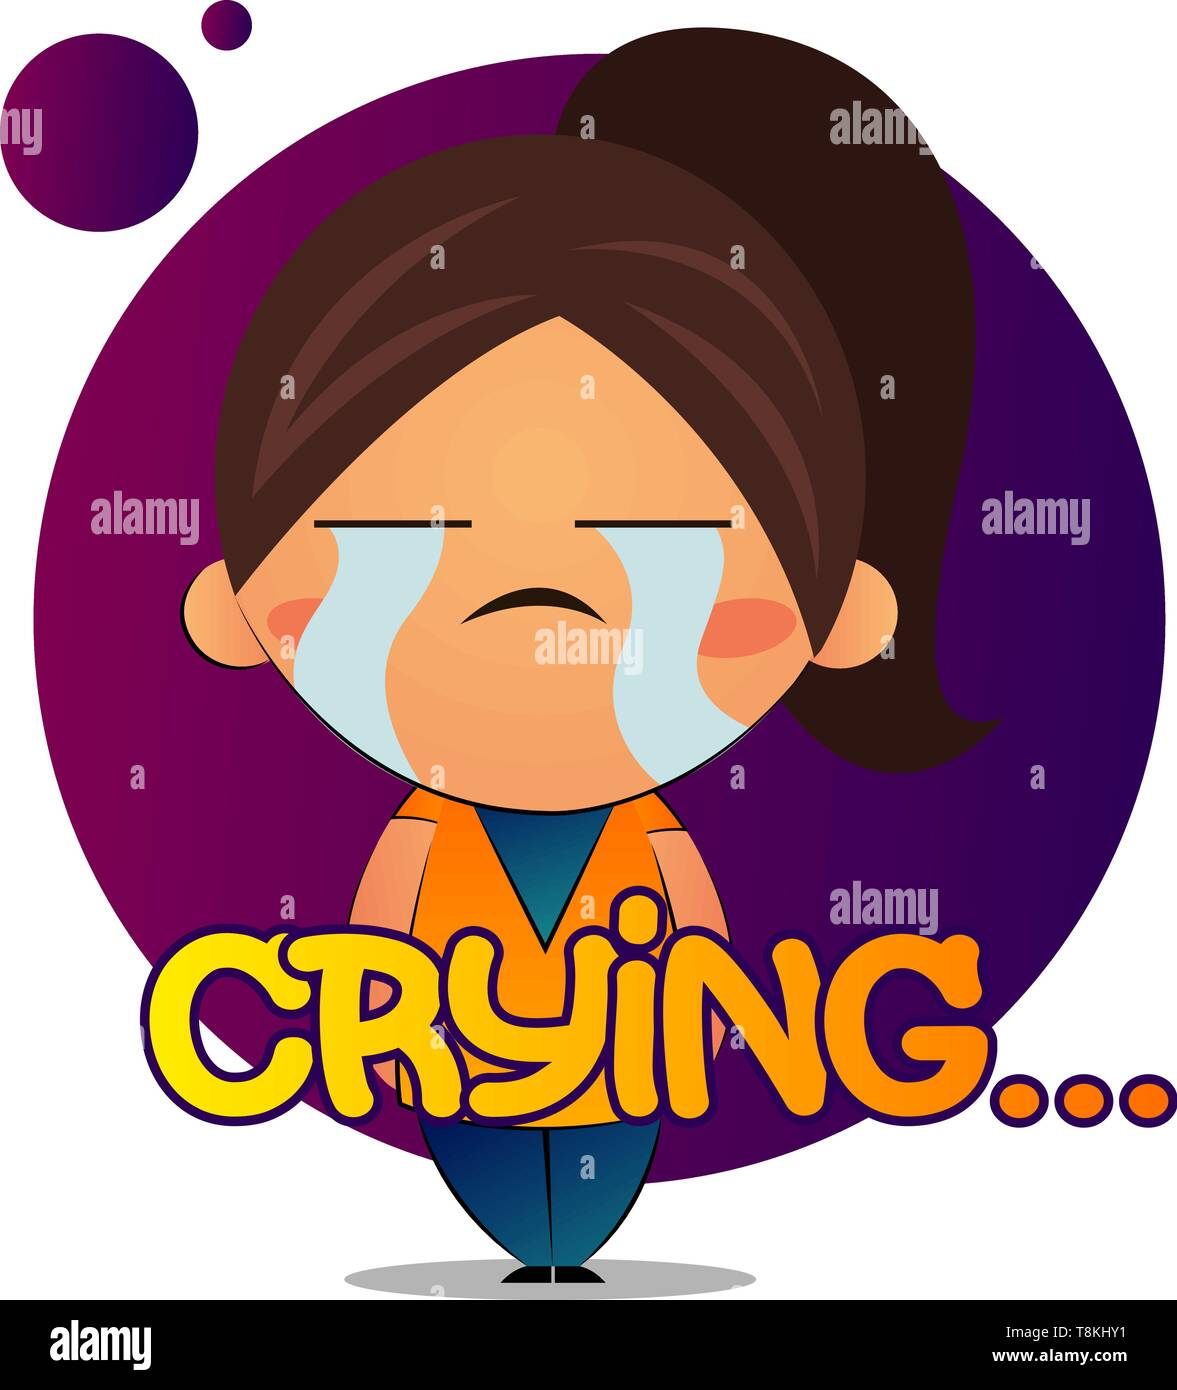 Girl with brown ponytail is crying, illustration, vector on white background. - Stock Image